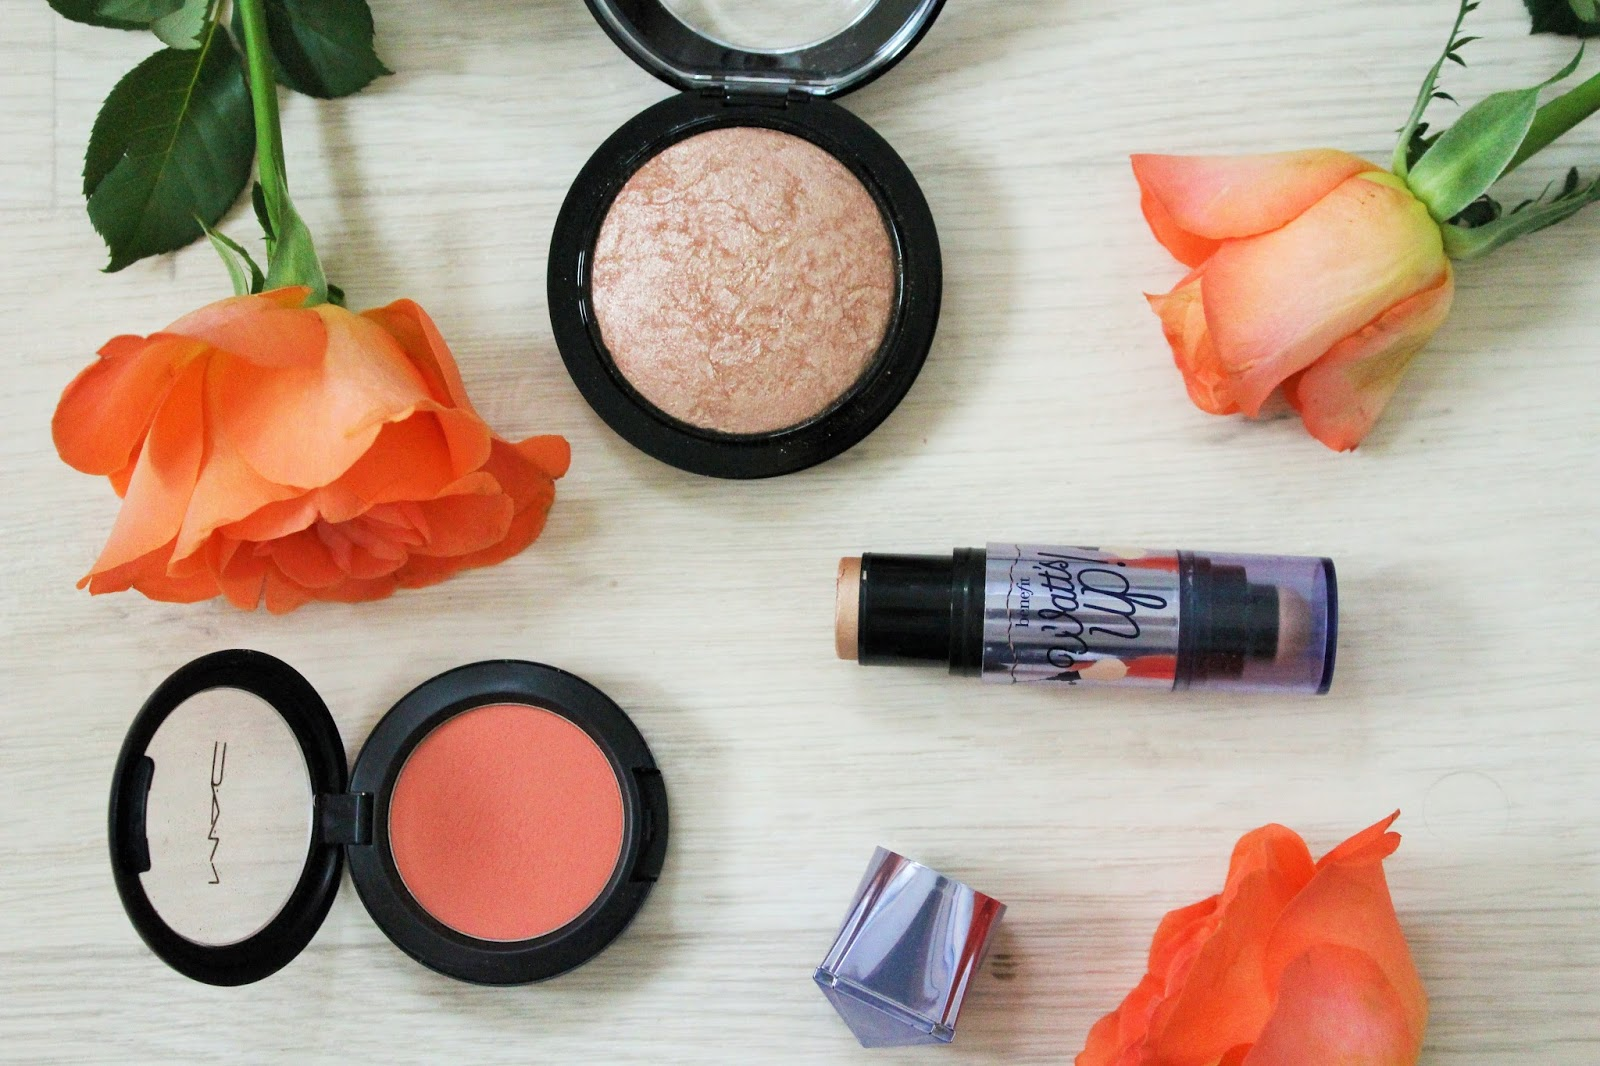 Blush and Highlight Products for Bridesmaids